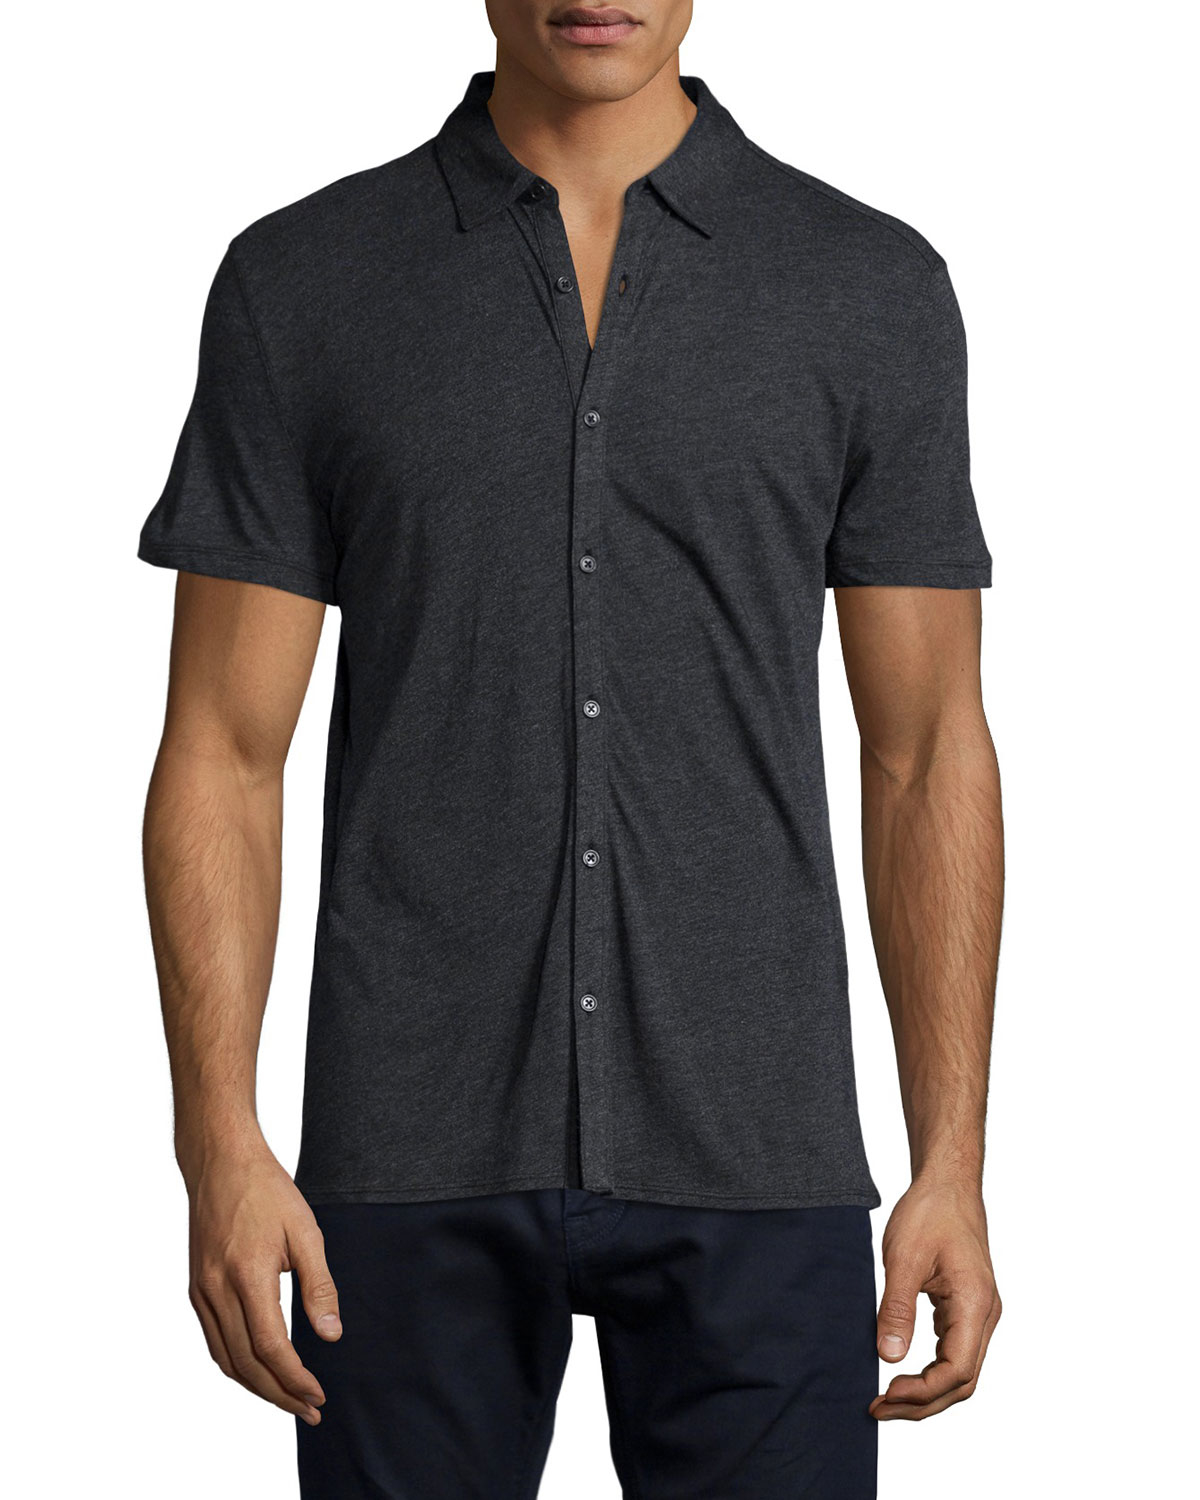 John varvatos Short-sleeve Knit Button-down Shirt in Black for Men ...